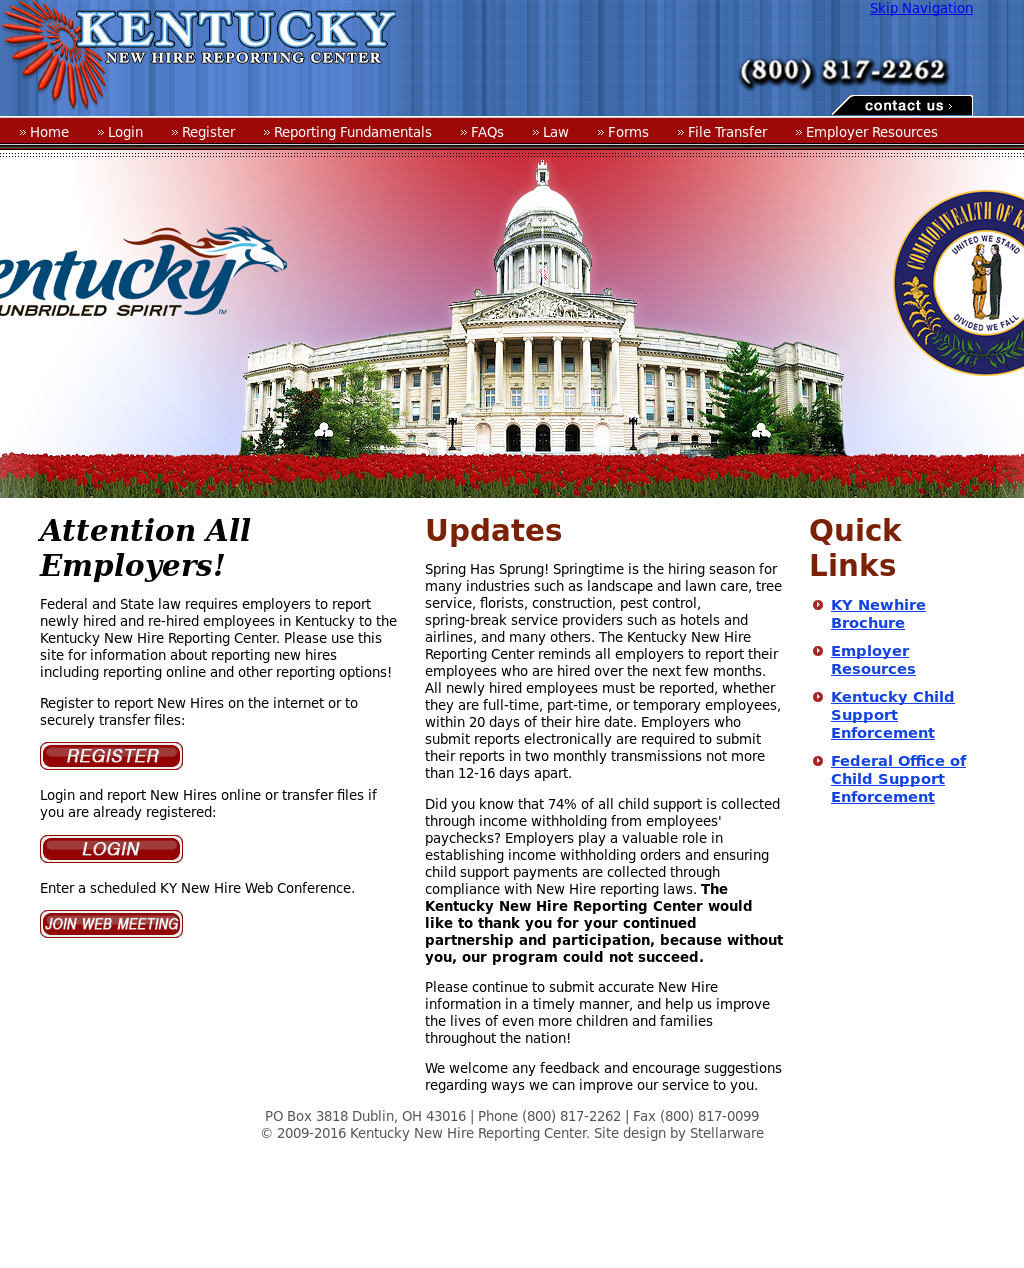 Kentucky New Hire Reporting Center Competitors, Revenue and